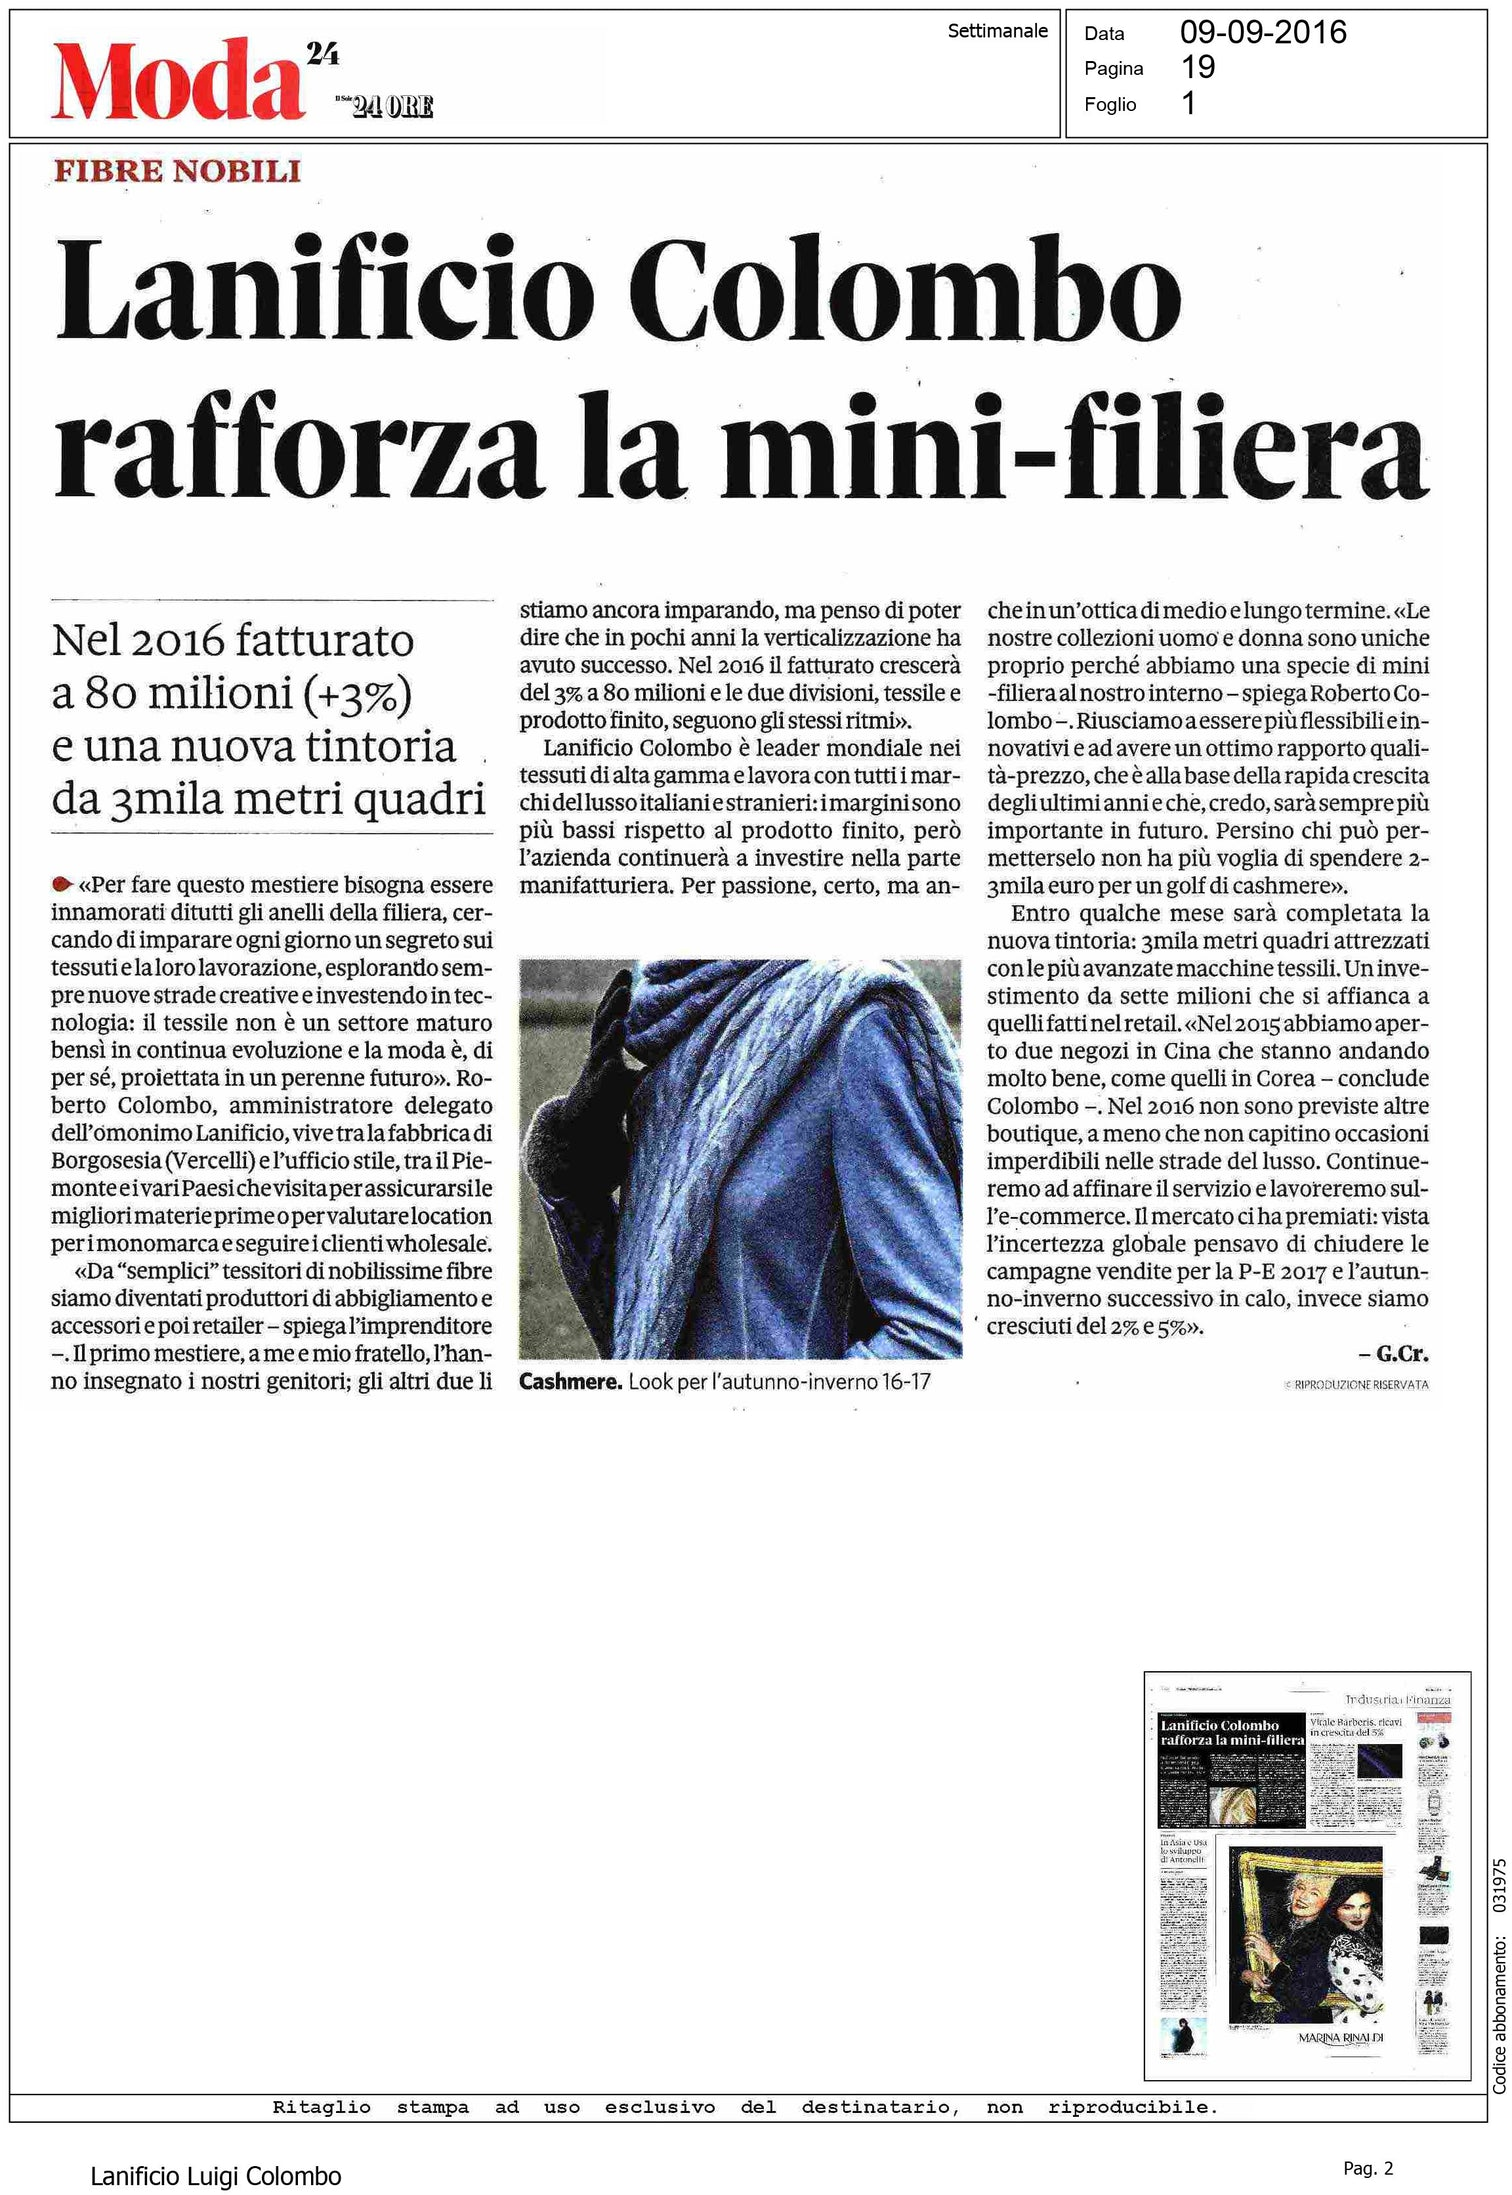 Il Sole 24 Ore - Lanificio Colombo rafforza la mini-filiera